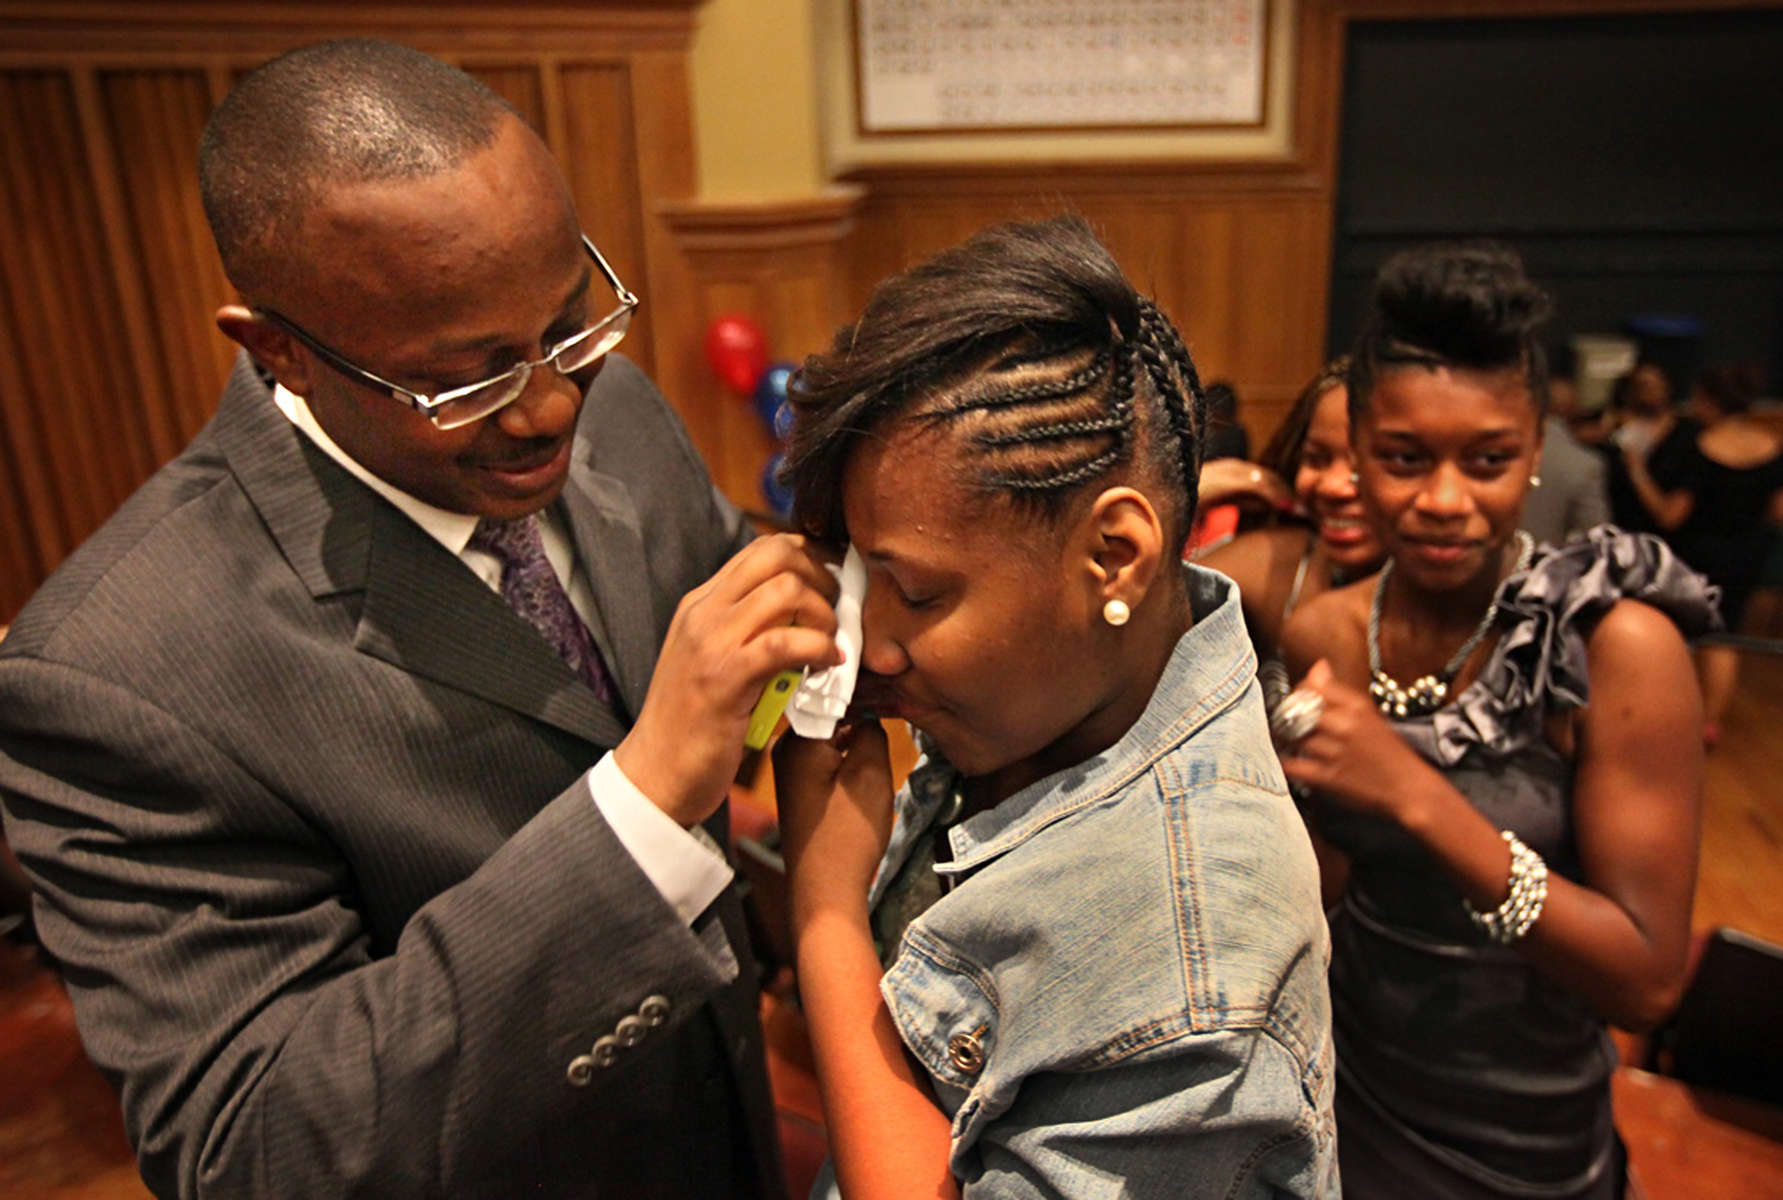 KIPP: Inspire Academy science teacher John Armstead (left) wipes tears from the eyes of Brittany King after King stopped to thank him for teaching her at the end of the promotion ceremony at Washington University on Friday, May 24, 2013.  Photo By David Carson, dcarson@post-dispatch.com